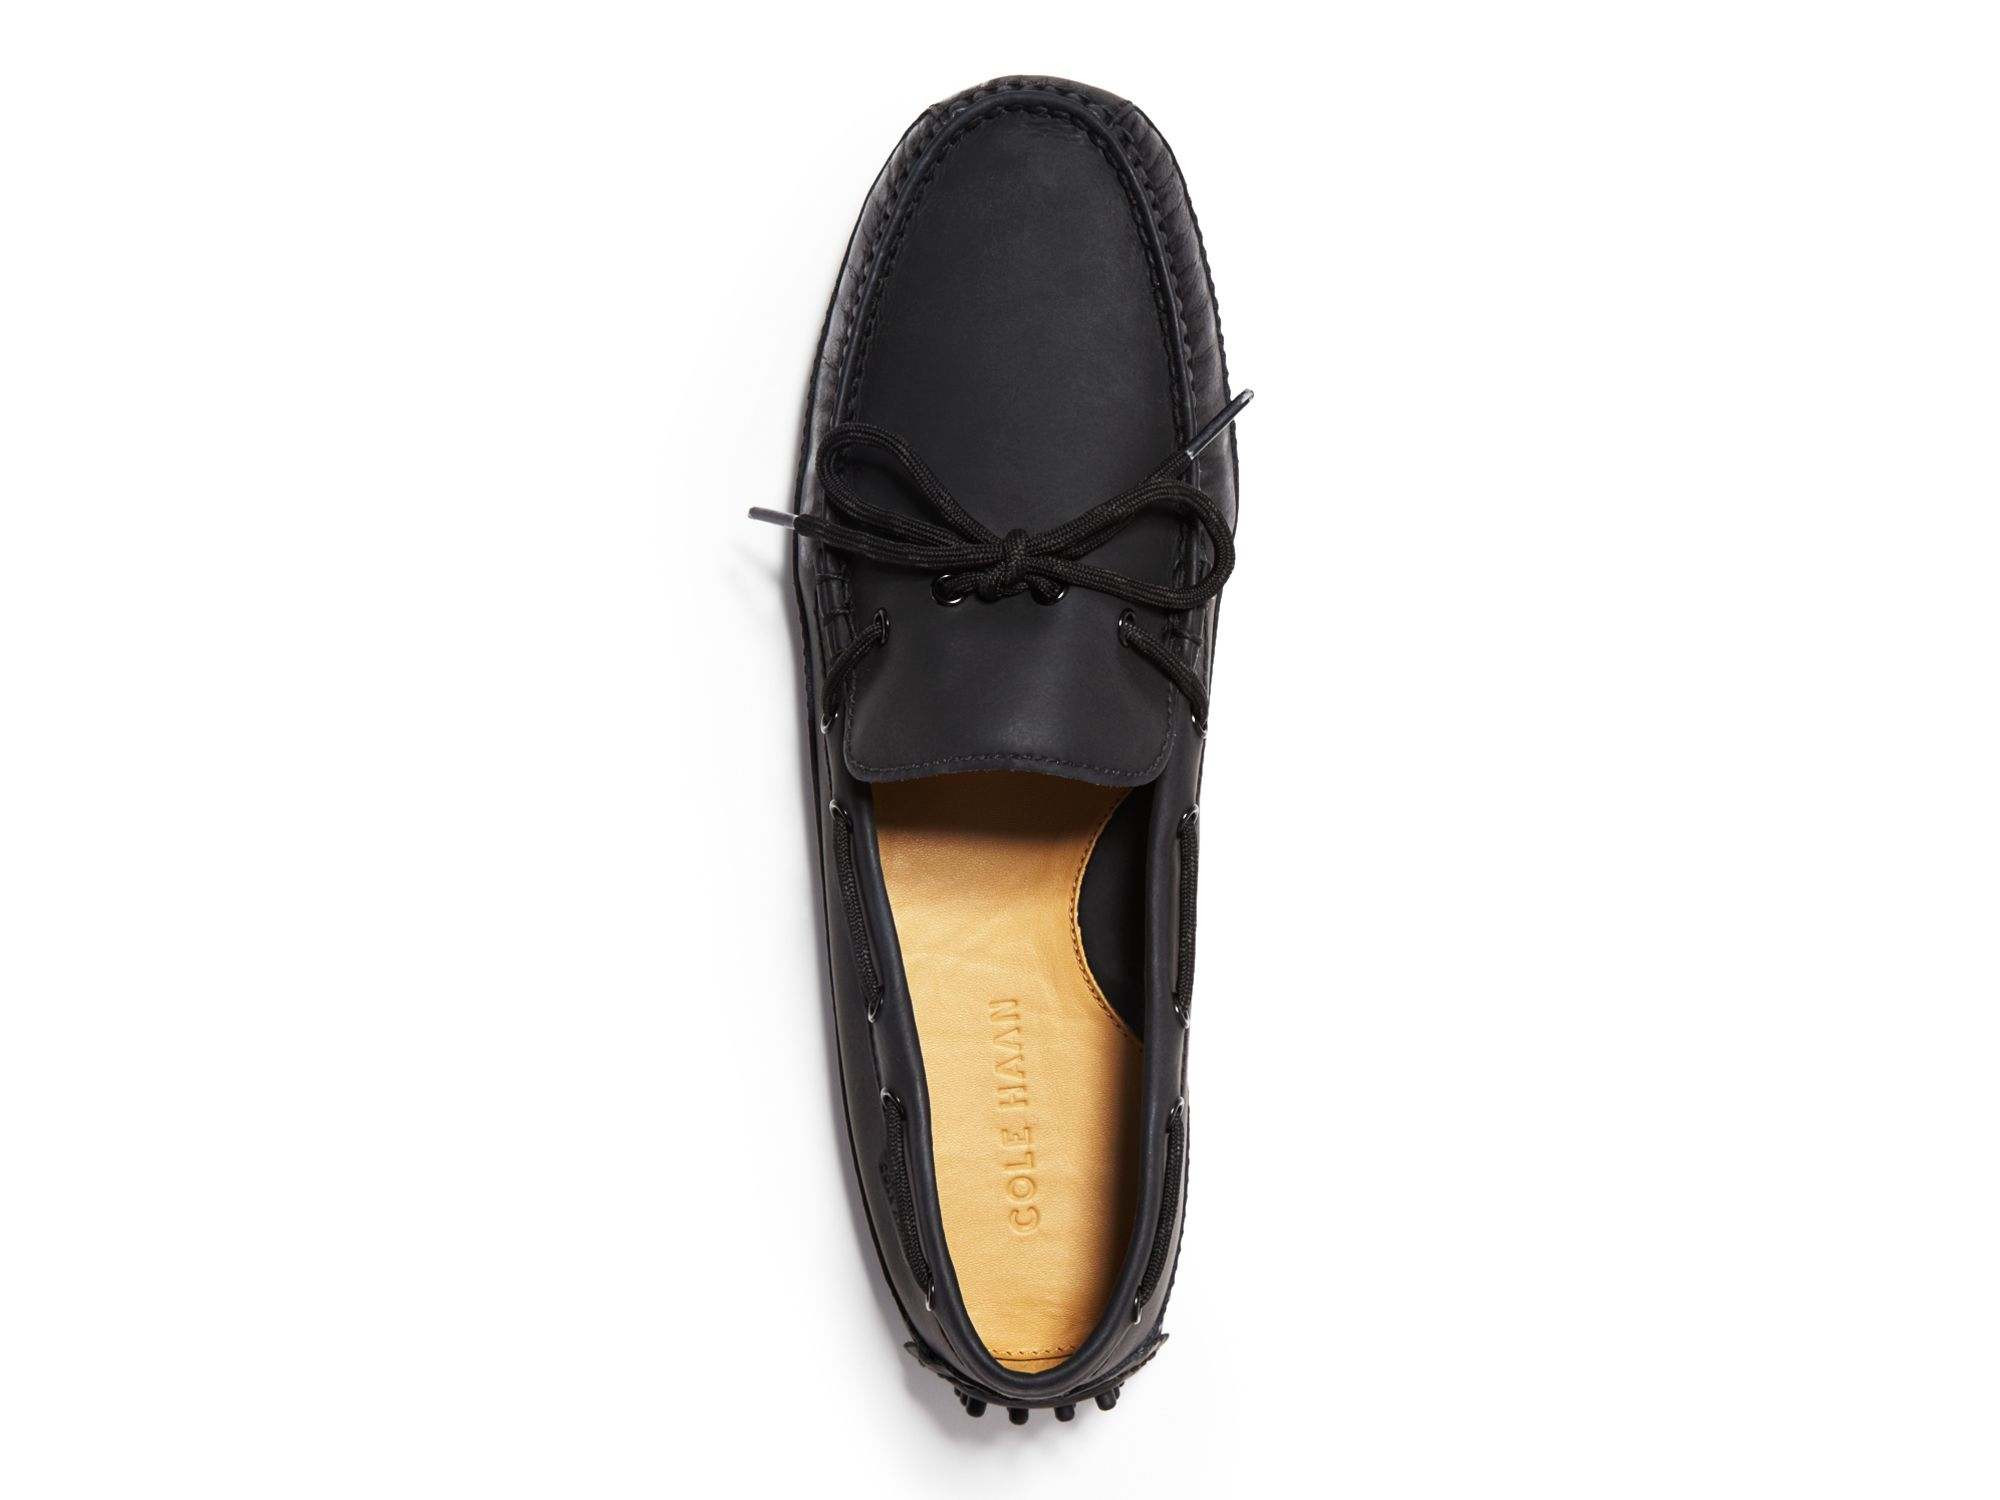 b5ca64c720641 Lyst - Cole Haan Grant Canoe Camp Moc Driving Loafers ...